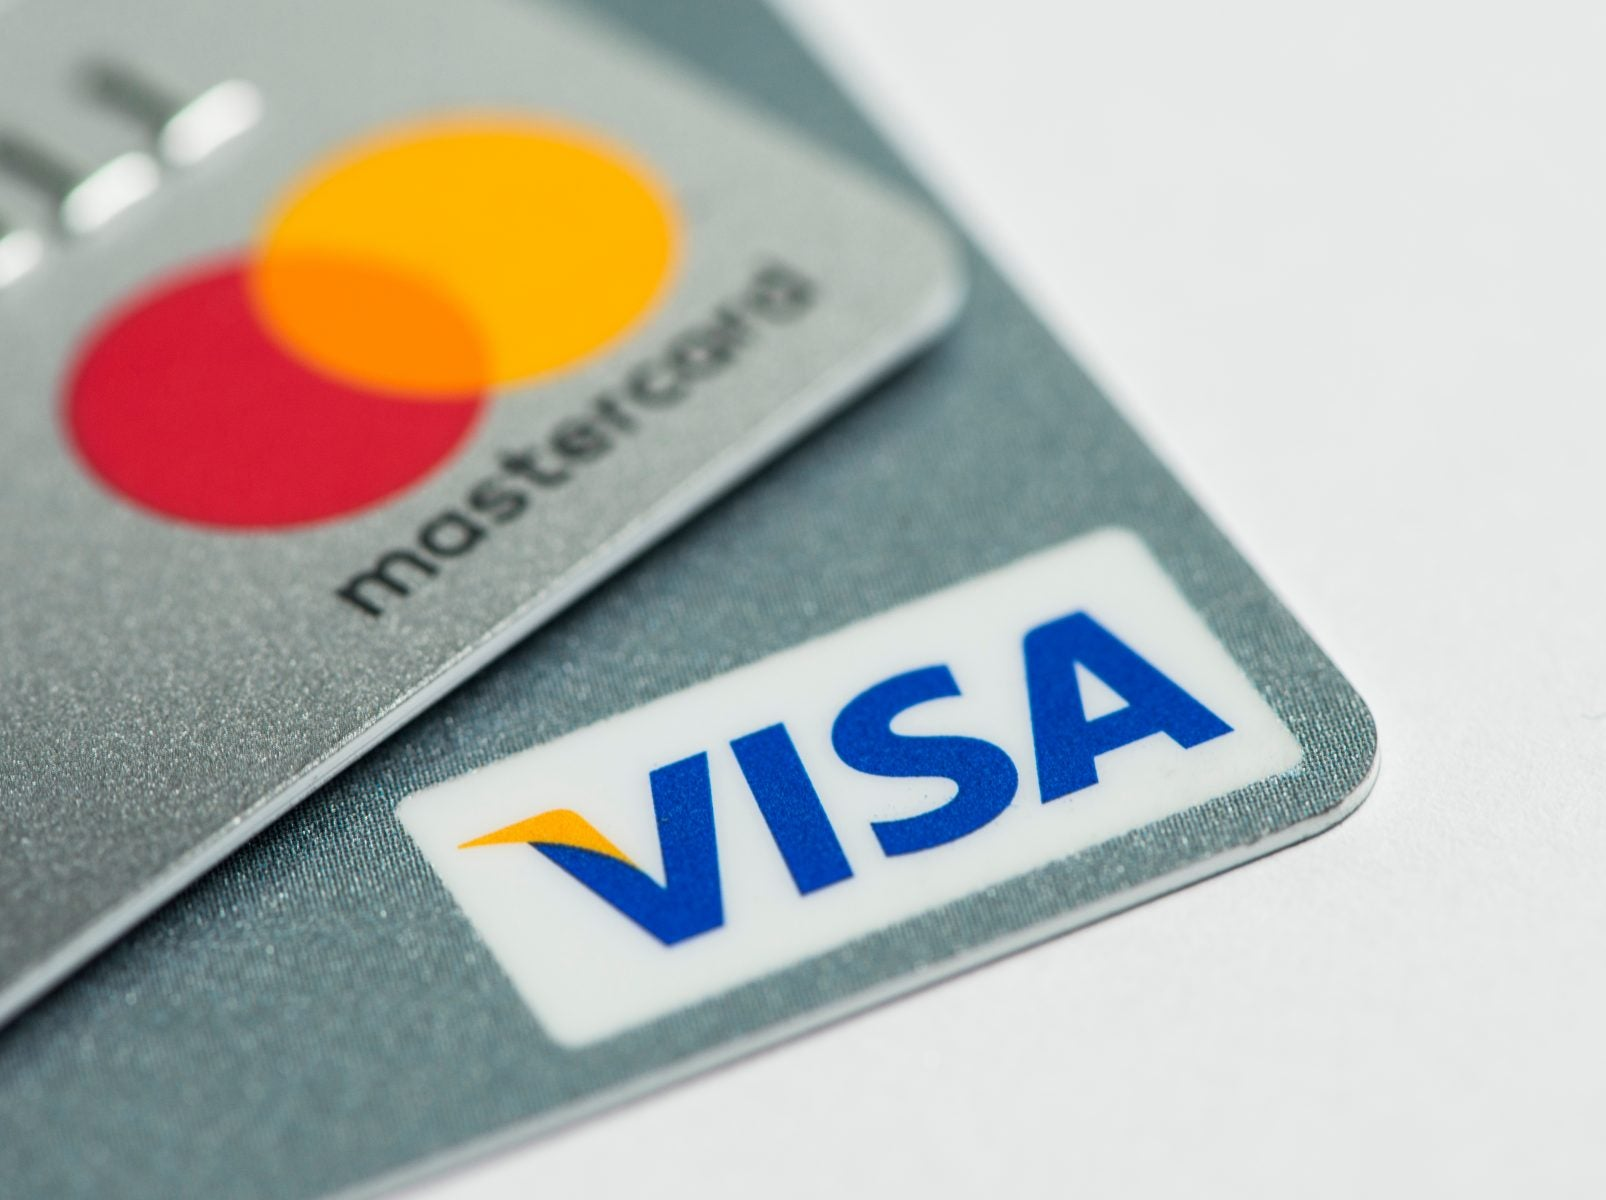 Easy 5x points on all spend: The ultimate guide to Visa and Mastercard gift card deals - featured image